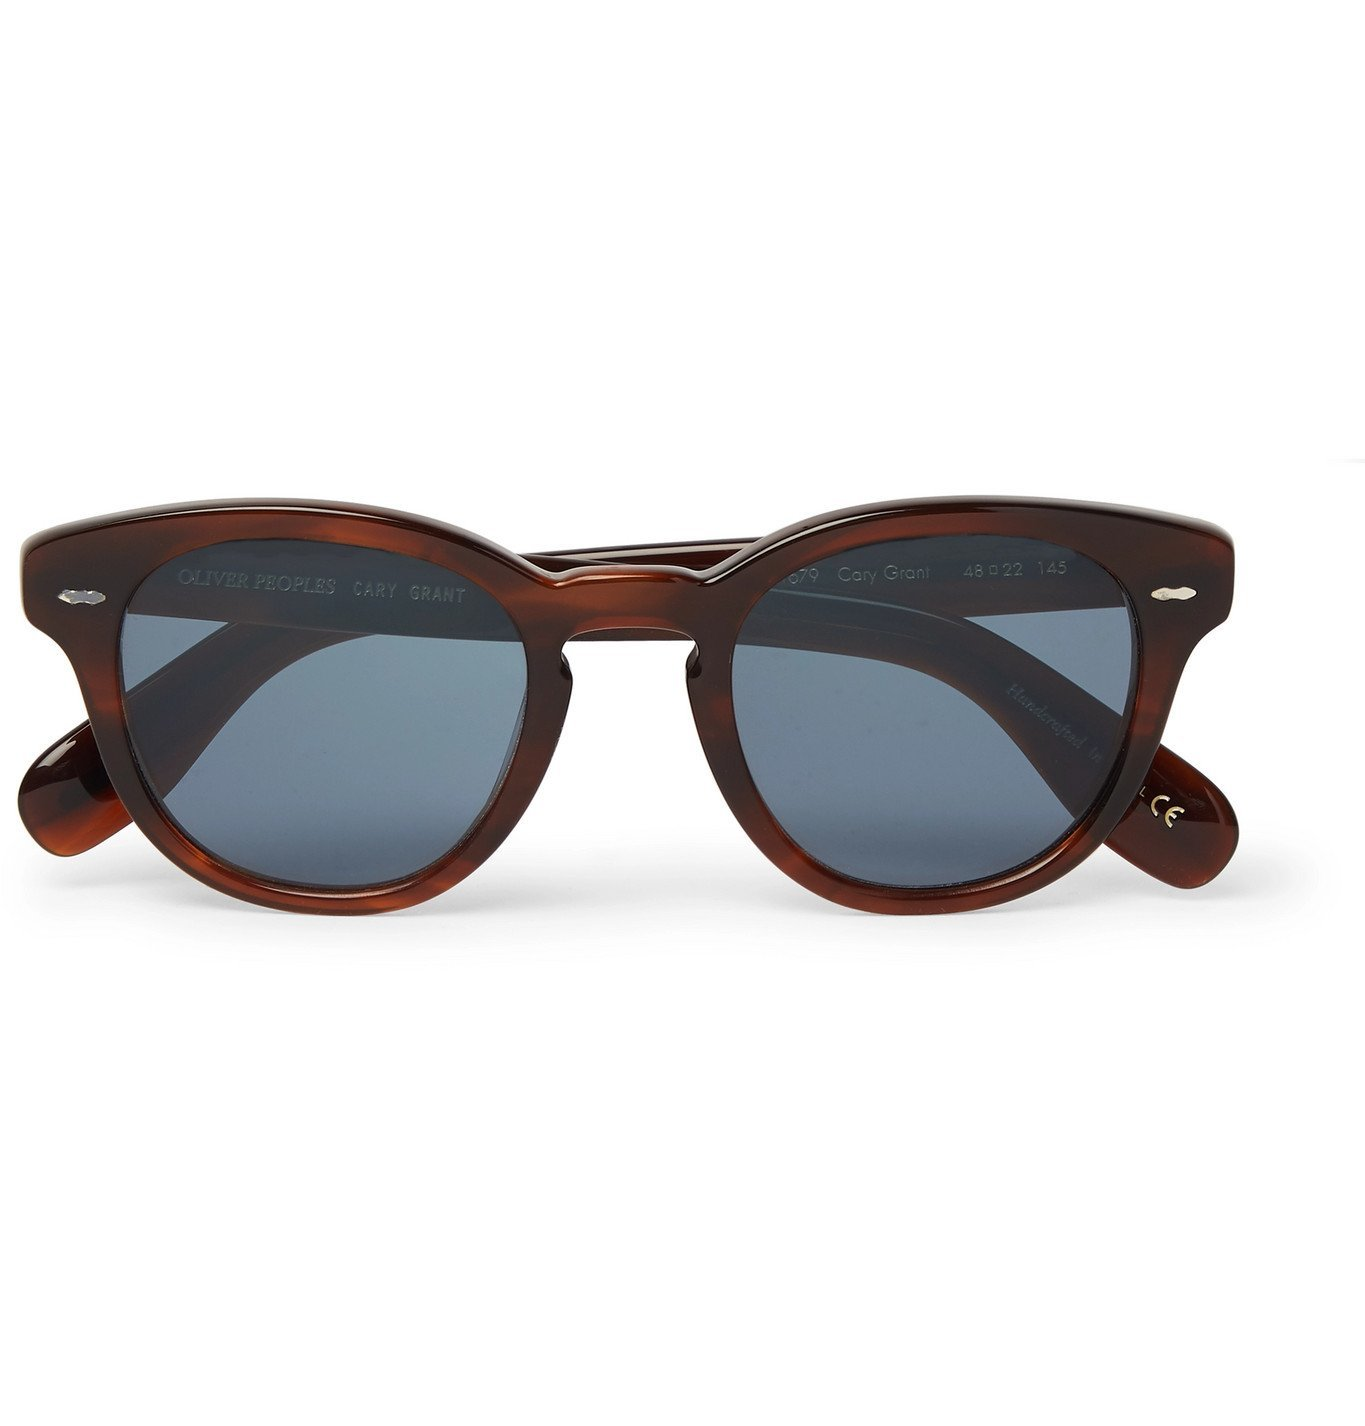 Photo: Oliver Peoples - Cary Grant Round-Frame Tortoiseshell Acetate Sunglasses - Tortoiseshell